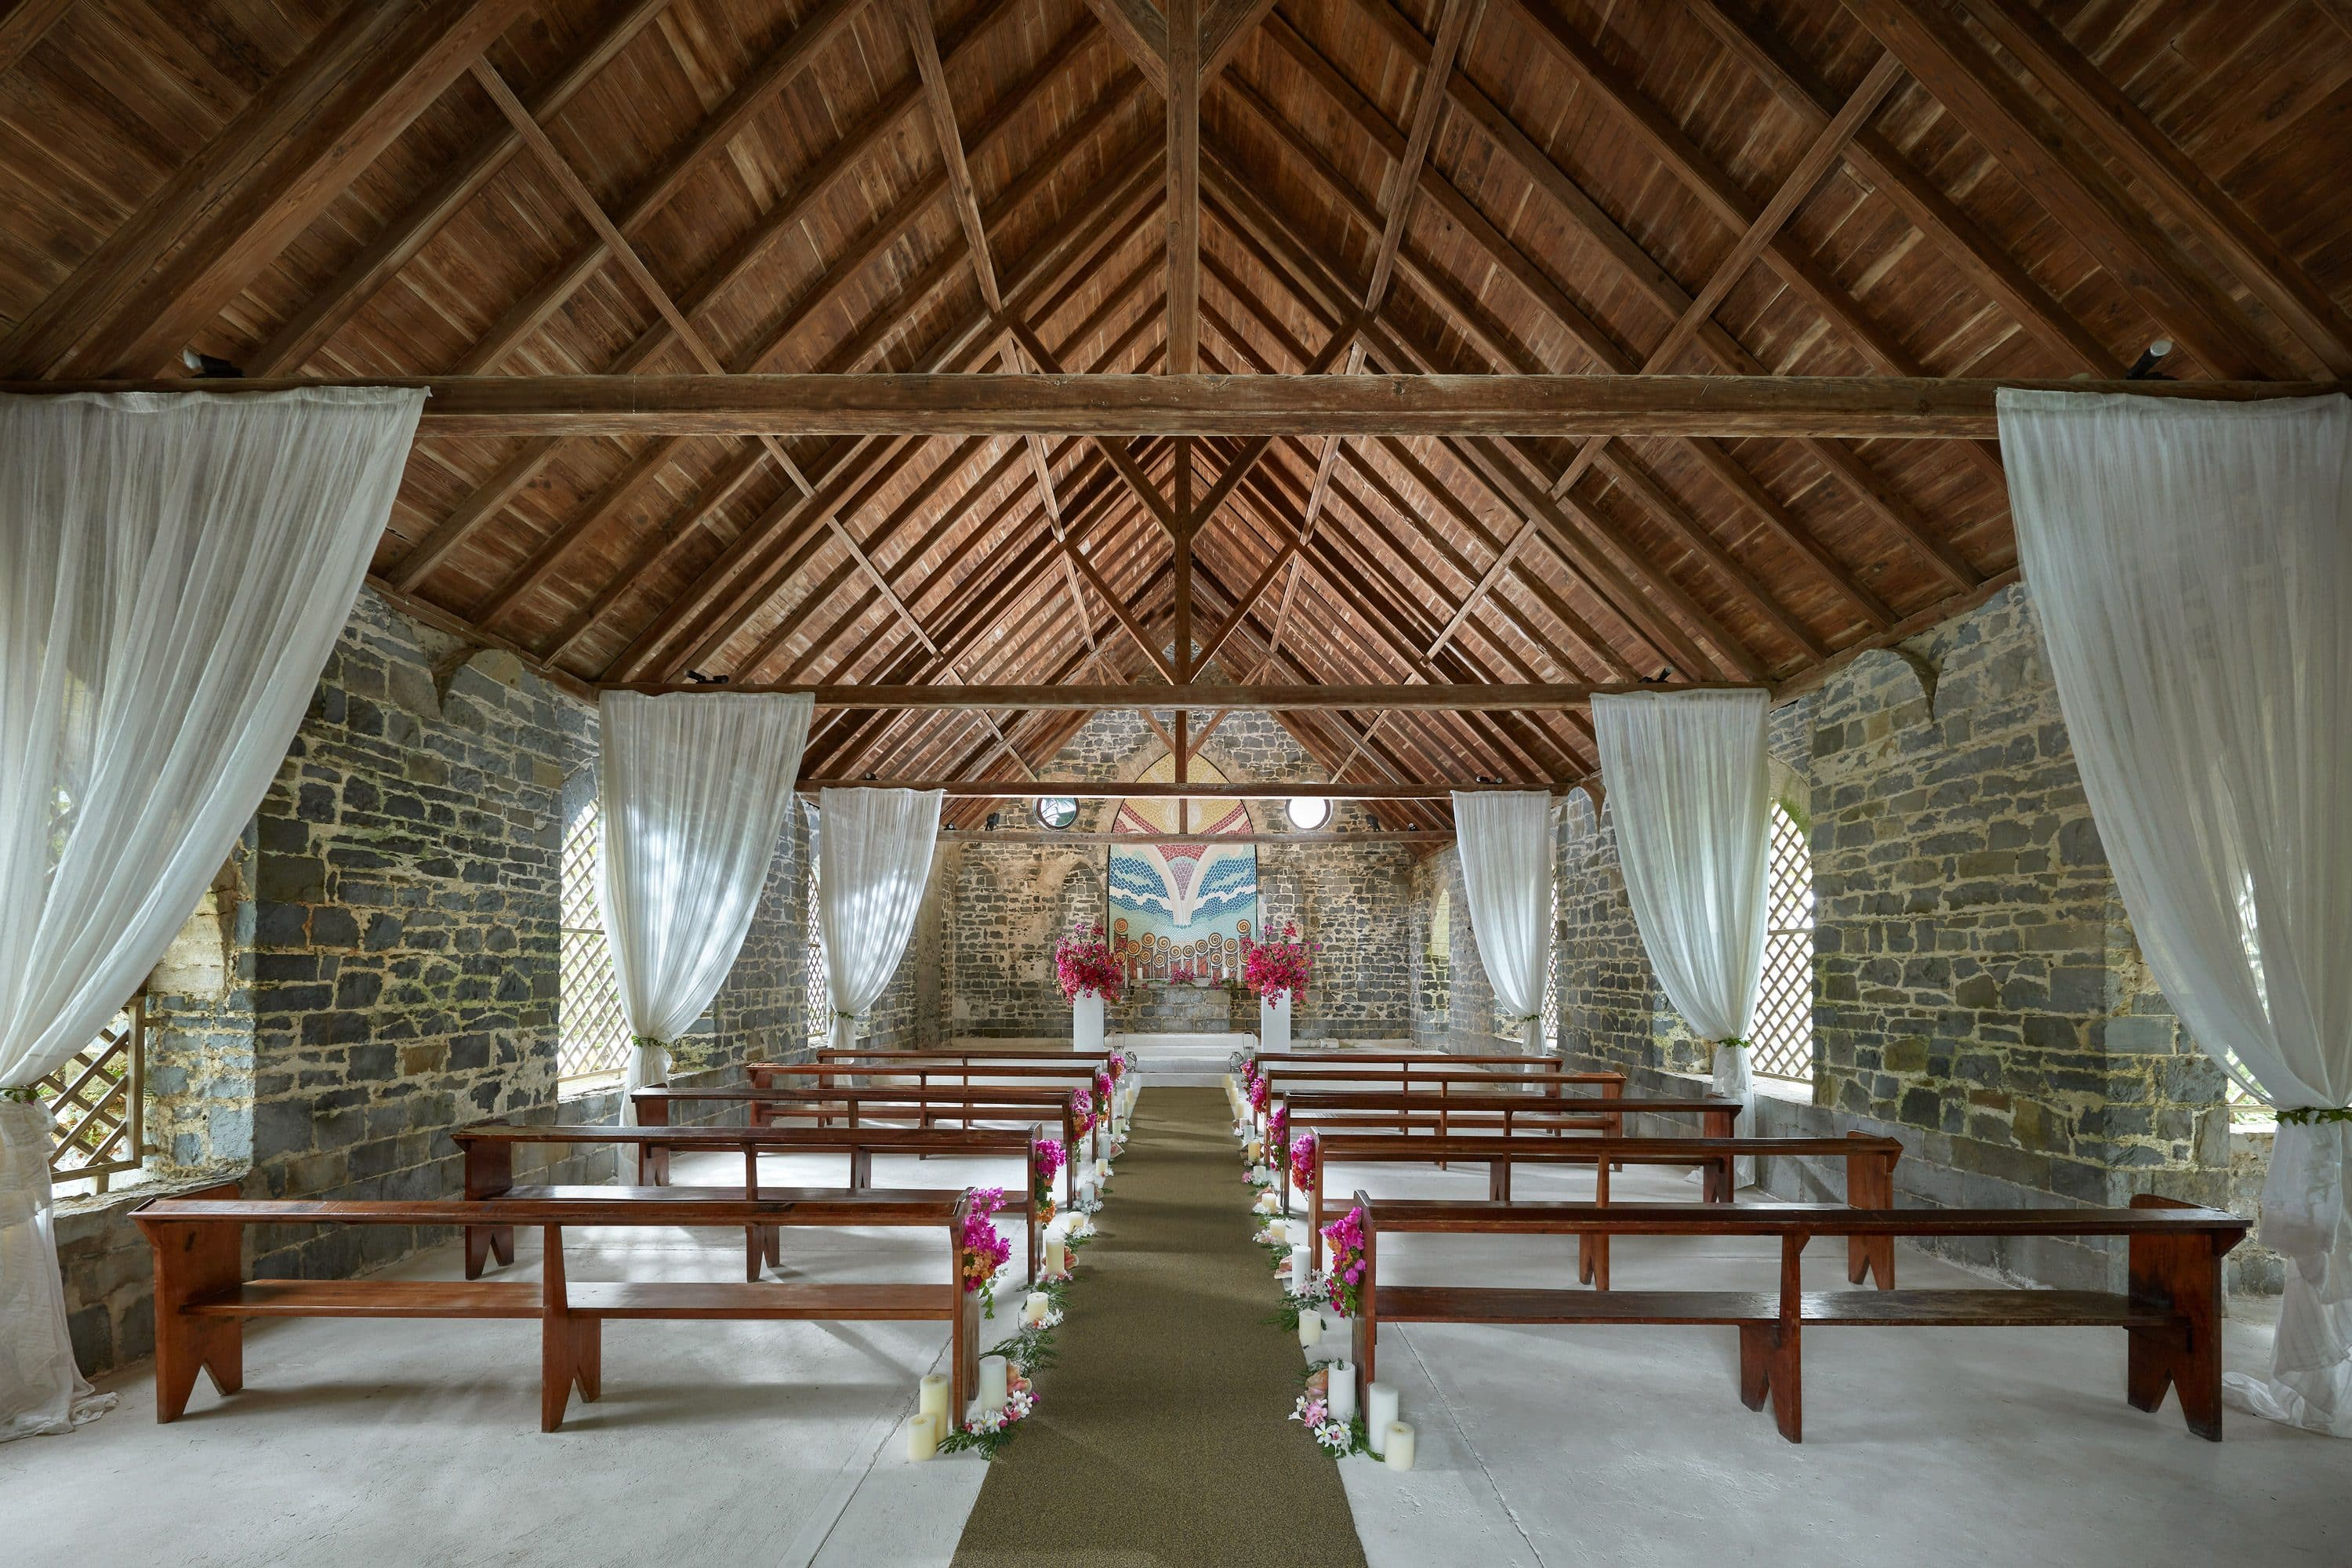 Church with vaulted ceiling set ready for a wedding with flowers on the pews in Canouan